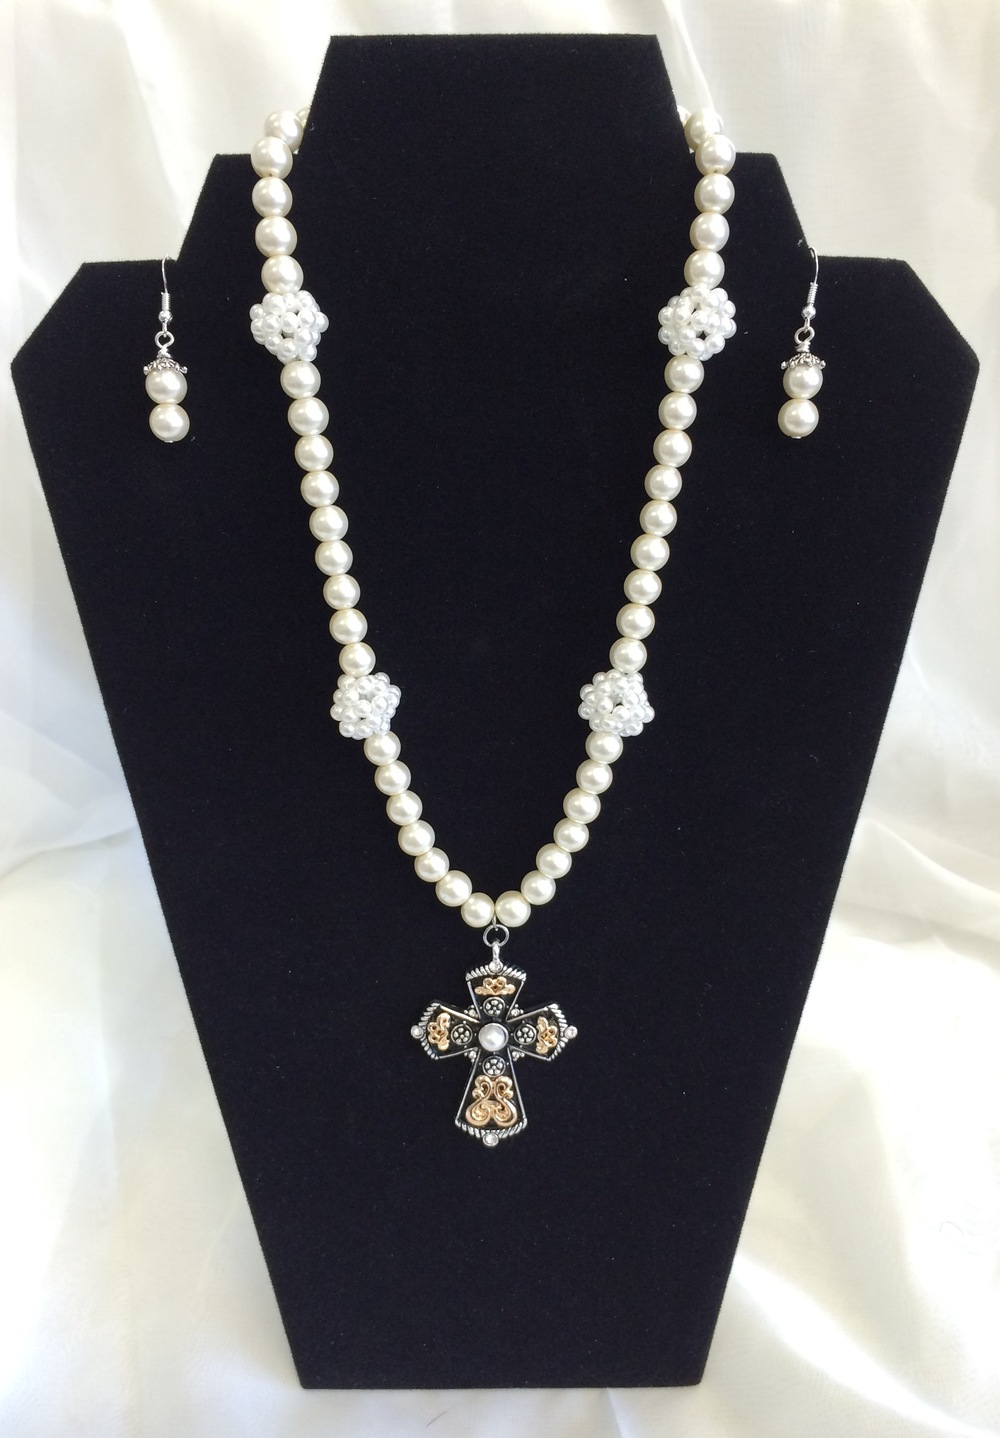 Designer Pearl Necklace $34.99